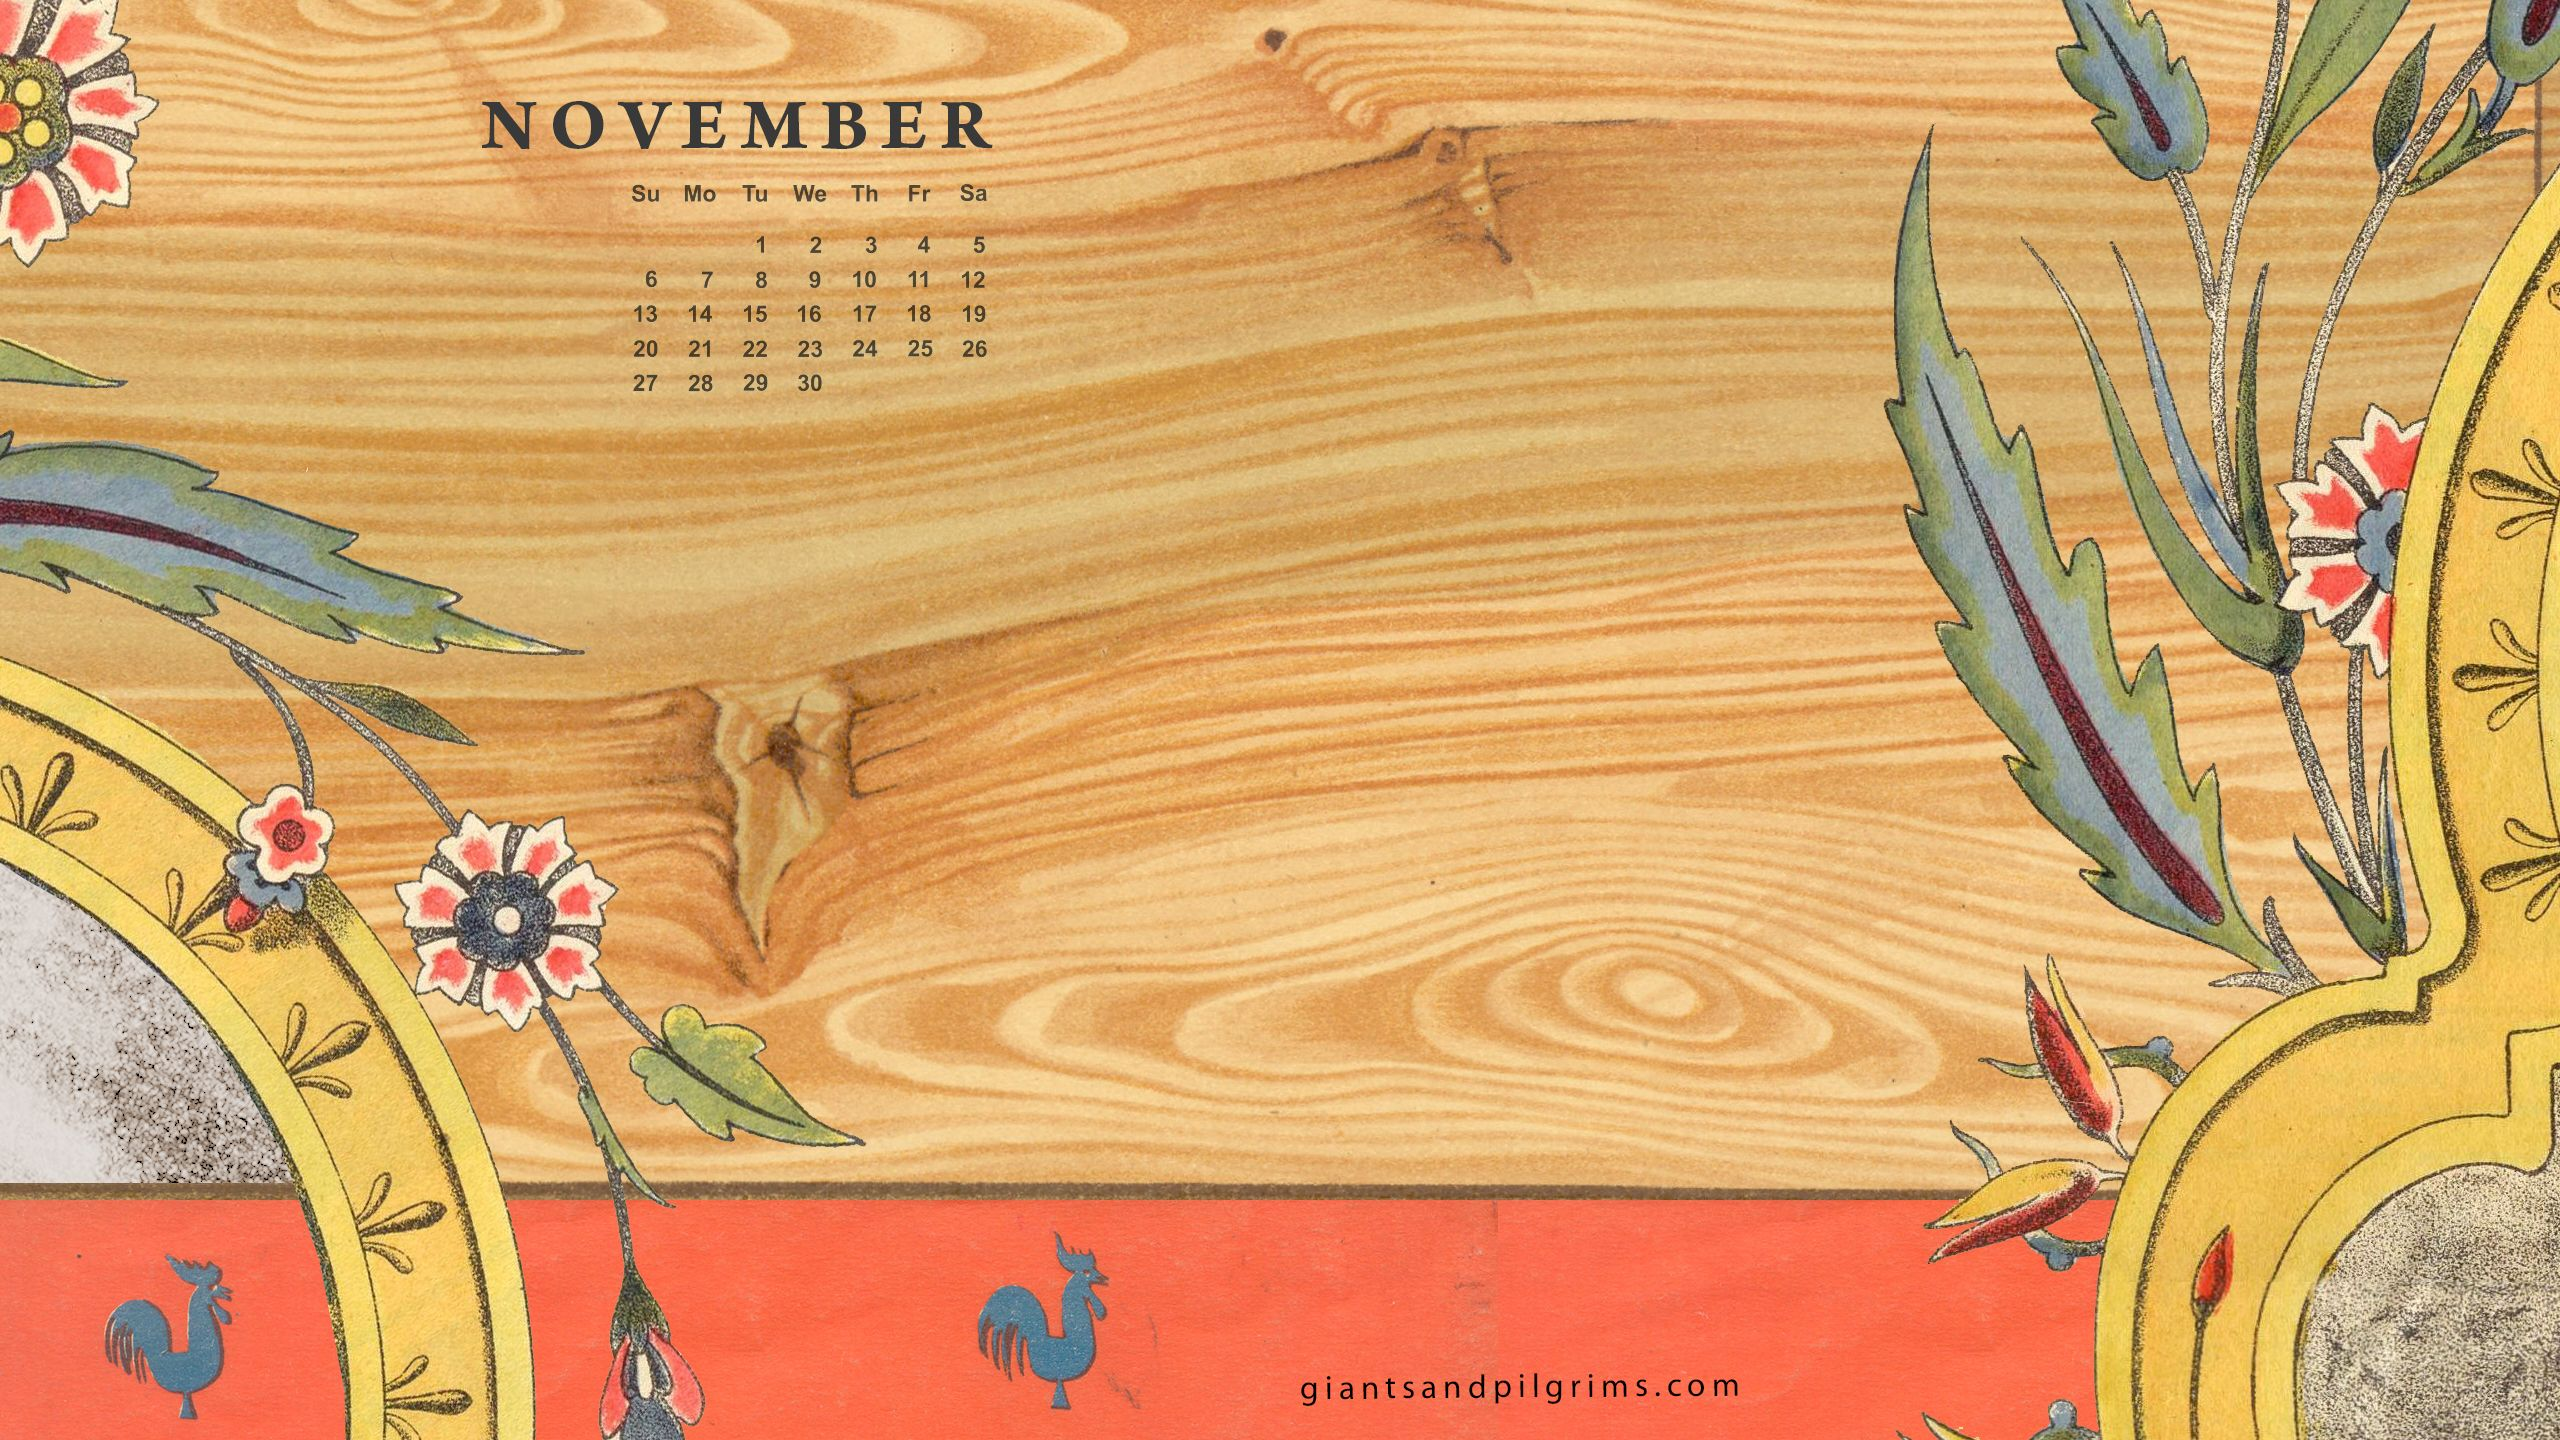 Iphone Calendar Wallpaper November : Giants pilgrims november free calendar desktop and